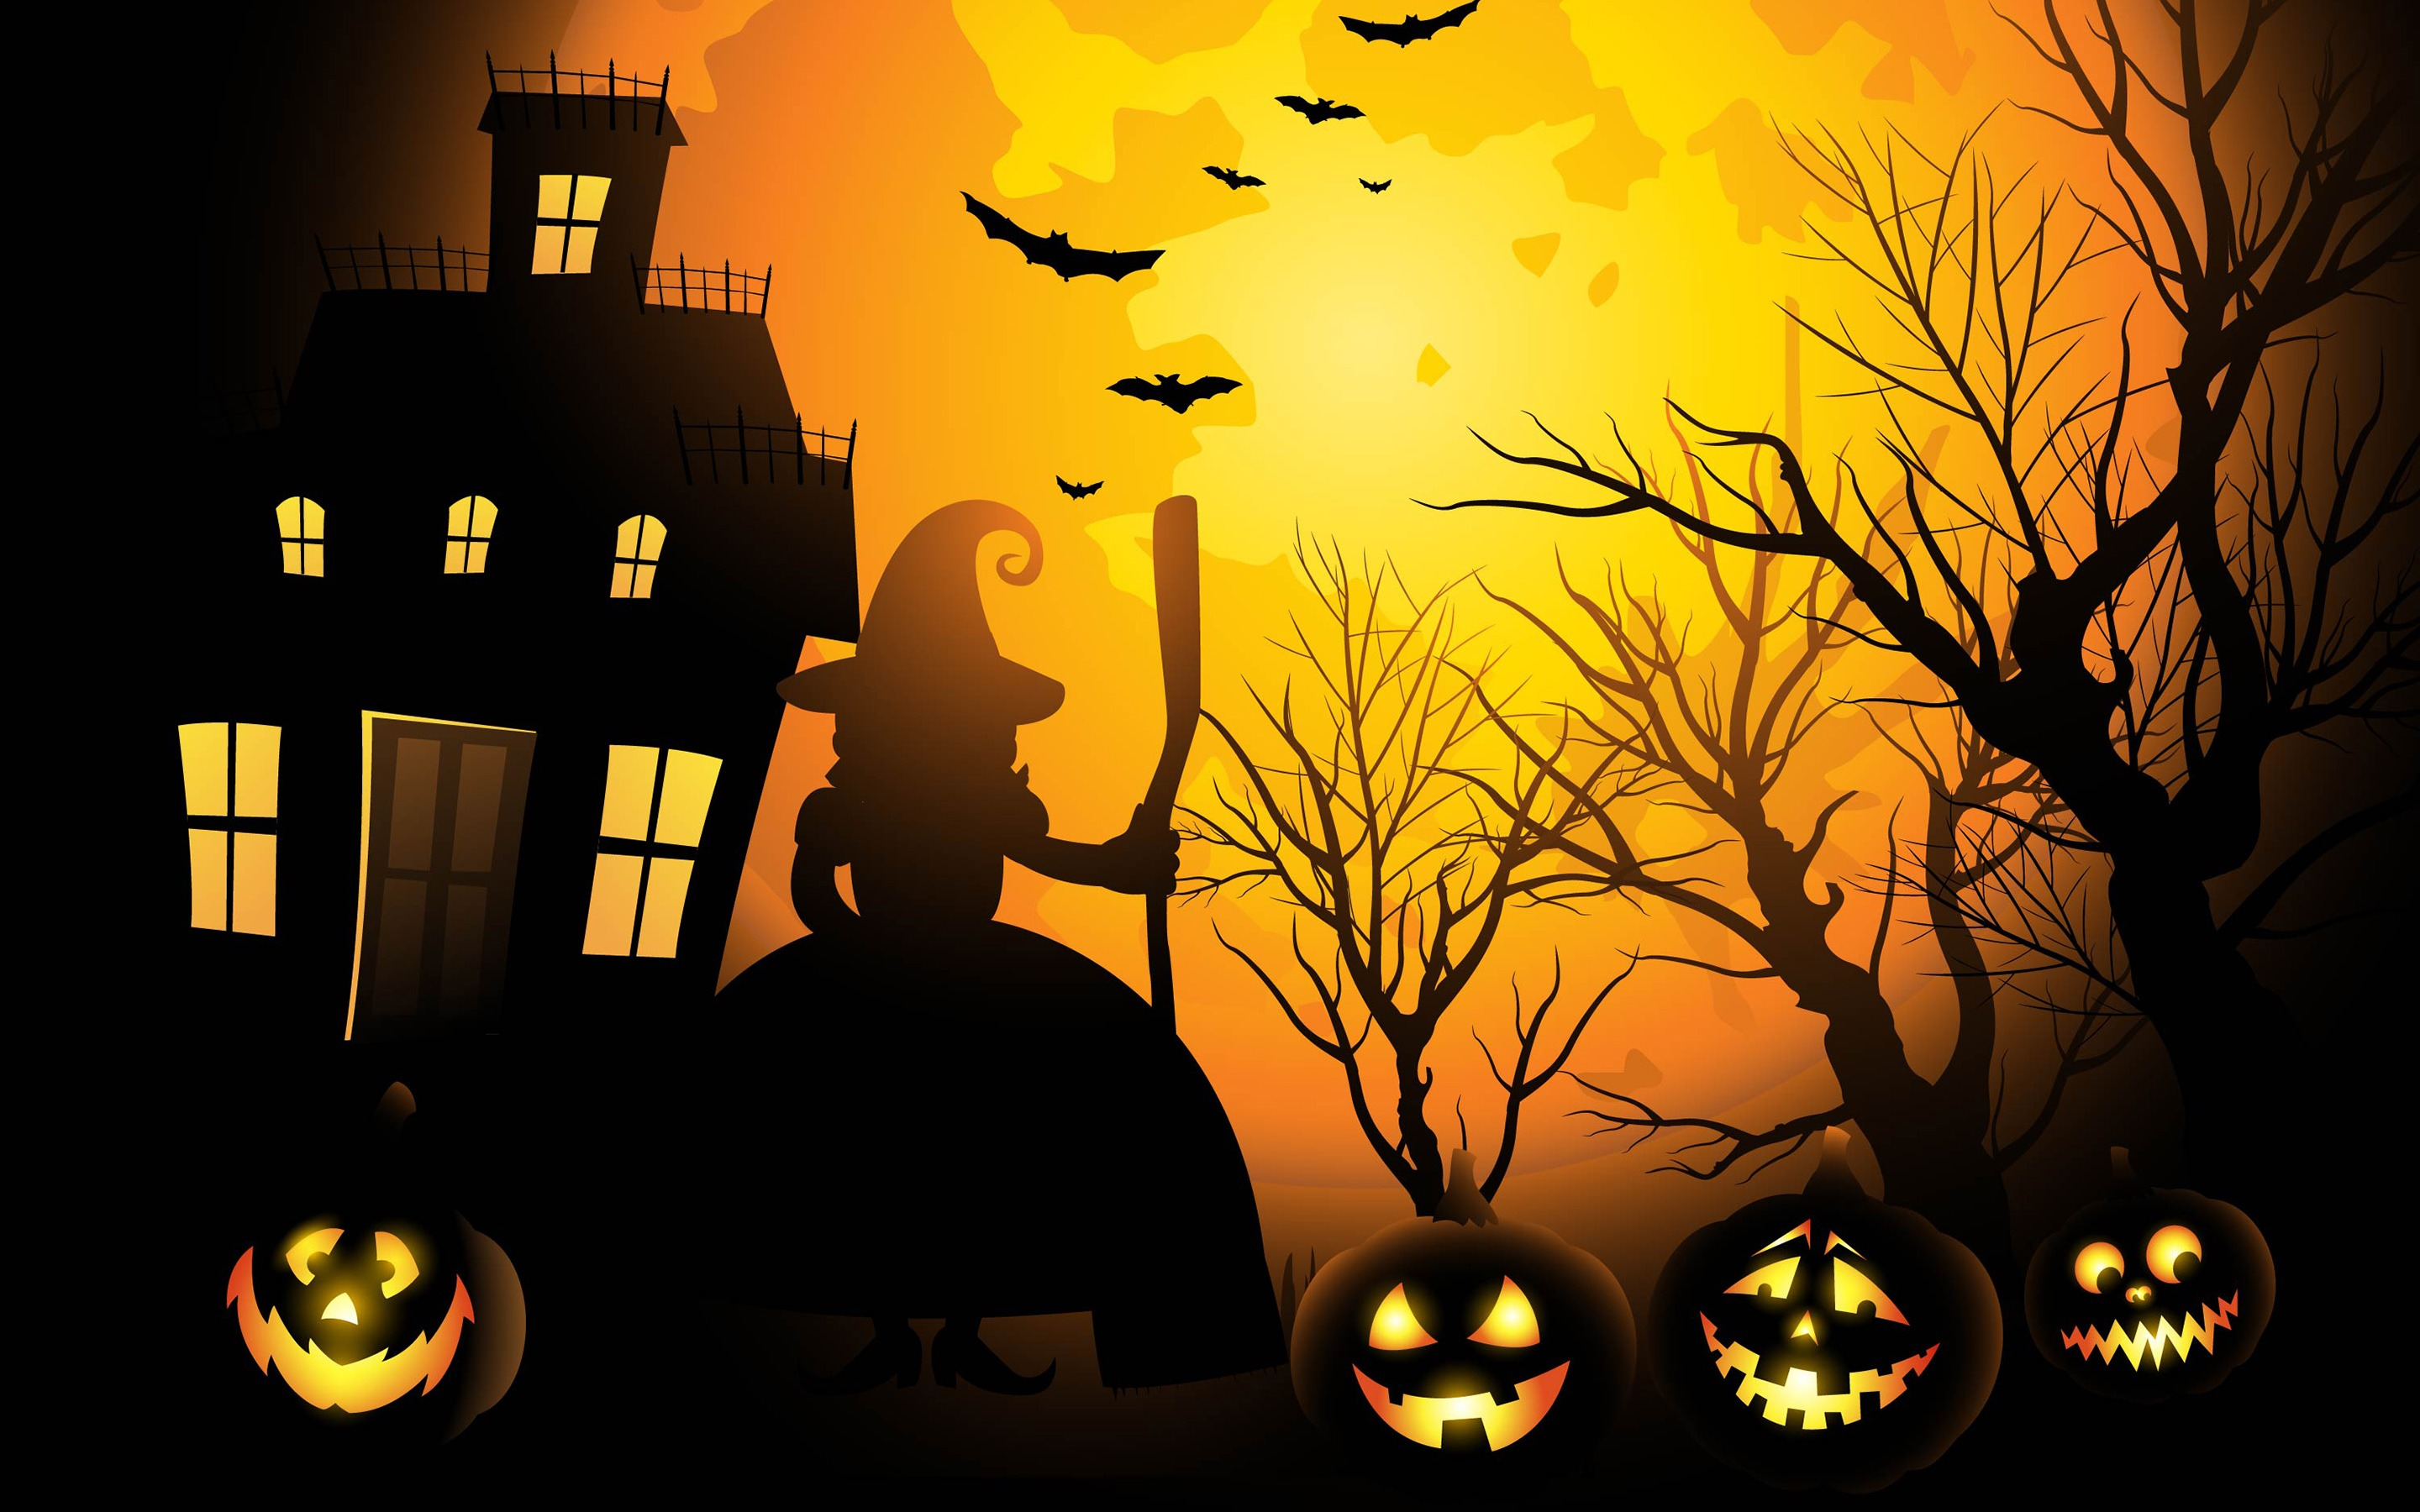 Halloween Black Pumpkin Witch House Night Wallpaper 2880x1800